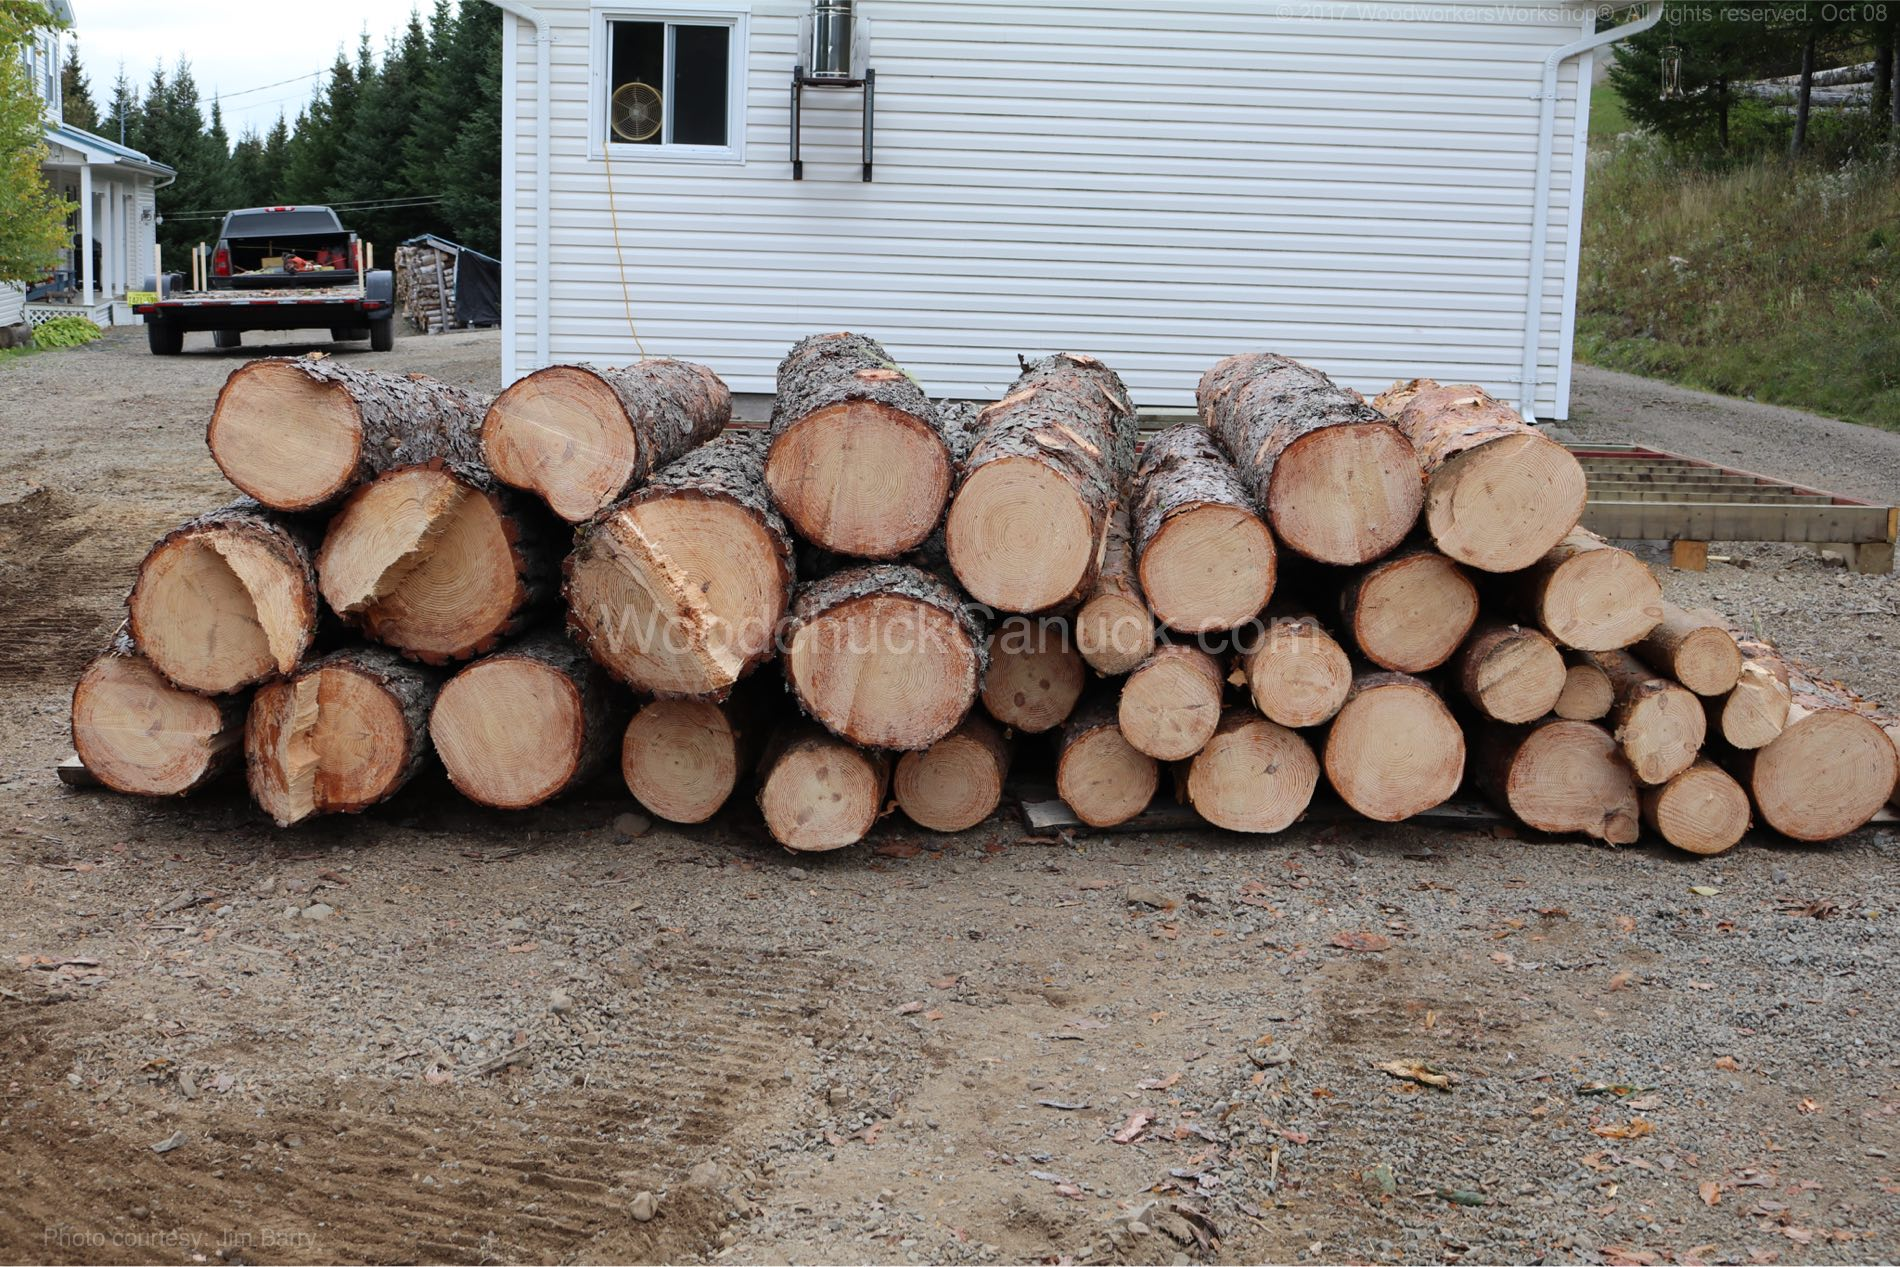 Lots of pine lumber in our future.